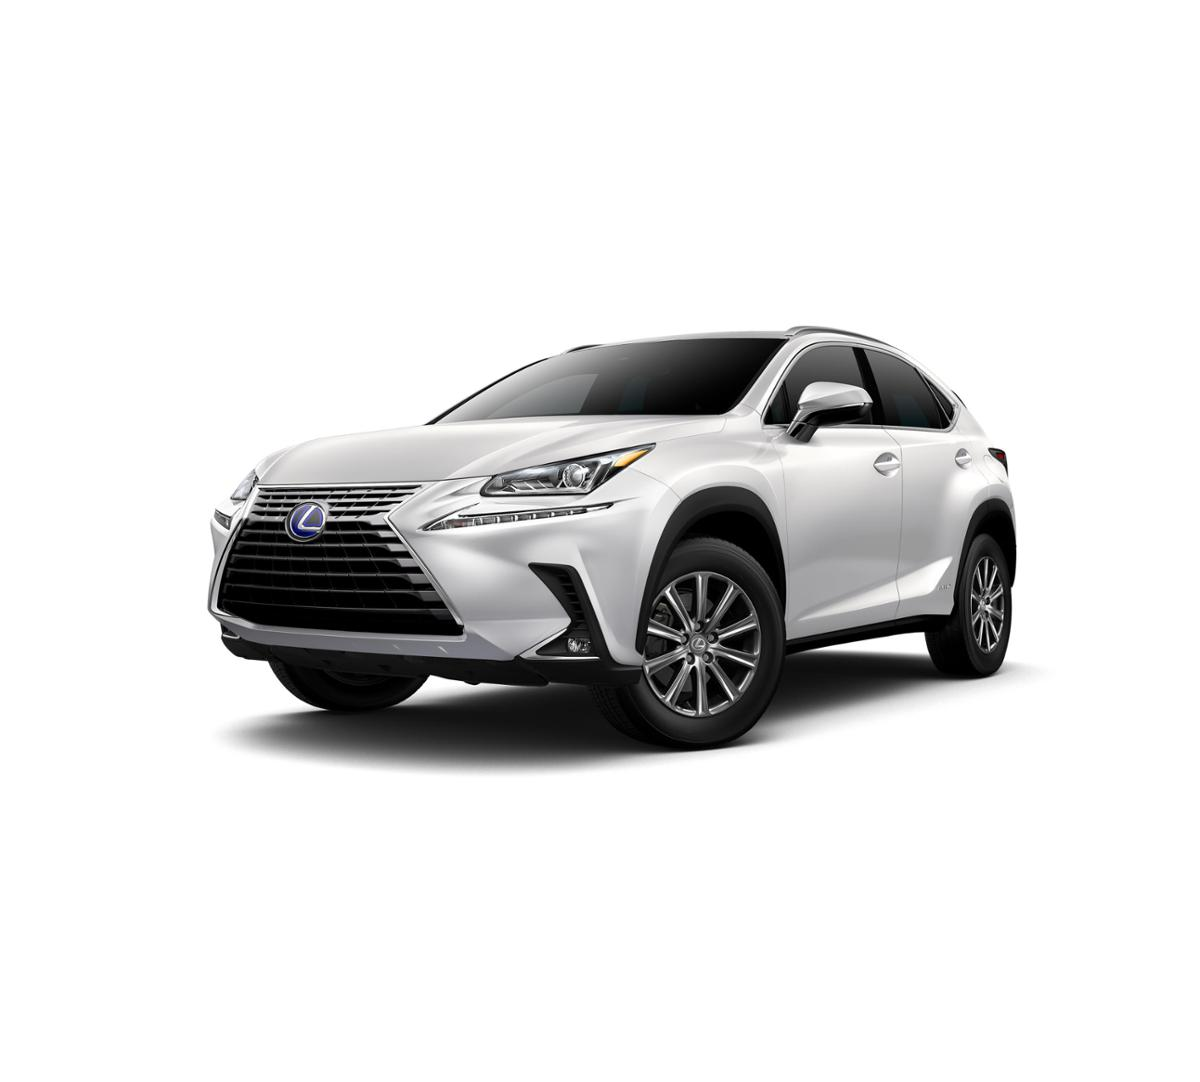 2018 Lexus NX 300h Vehicle Photo in Santa Monica, CA 90404